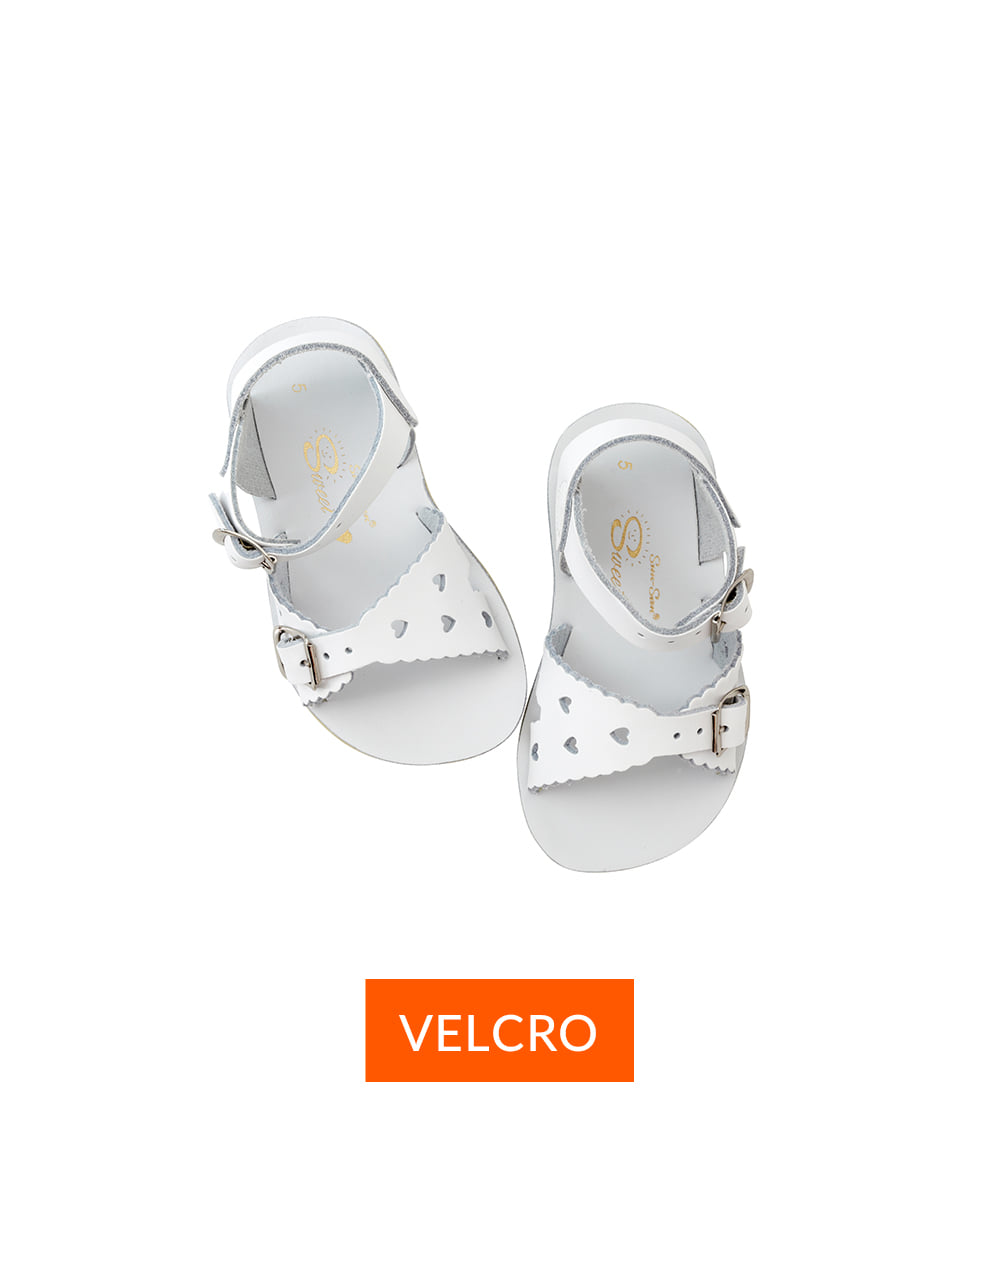 SALT-WATER SANDAL  CHILD VELCRO  SWEETHEART  White